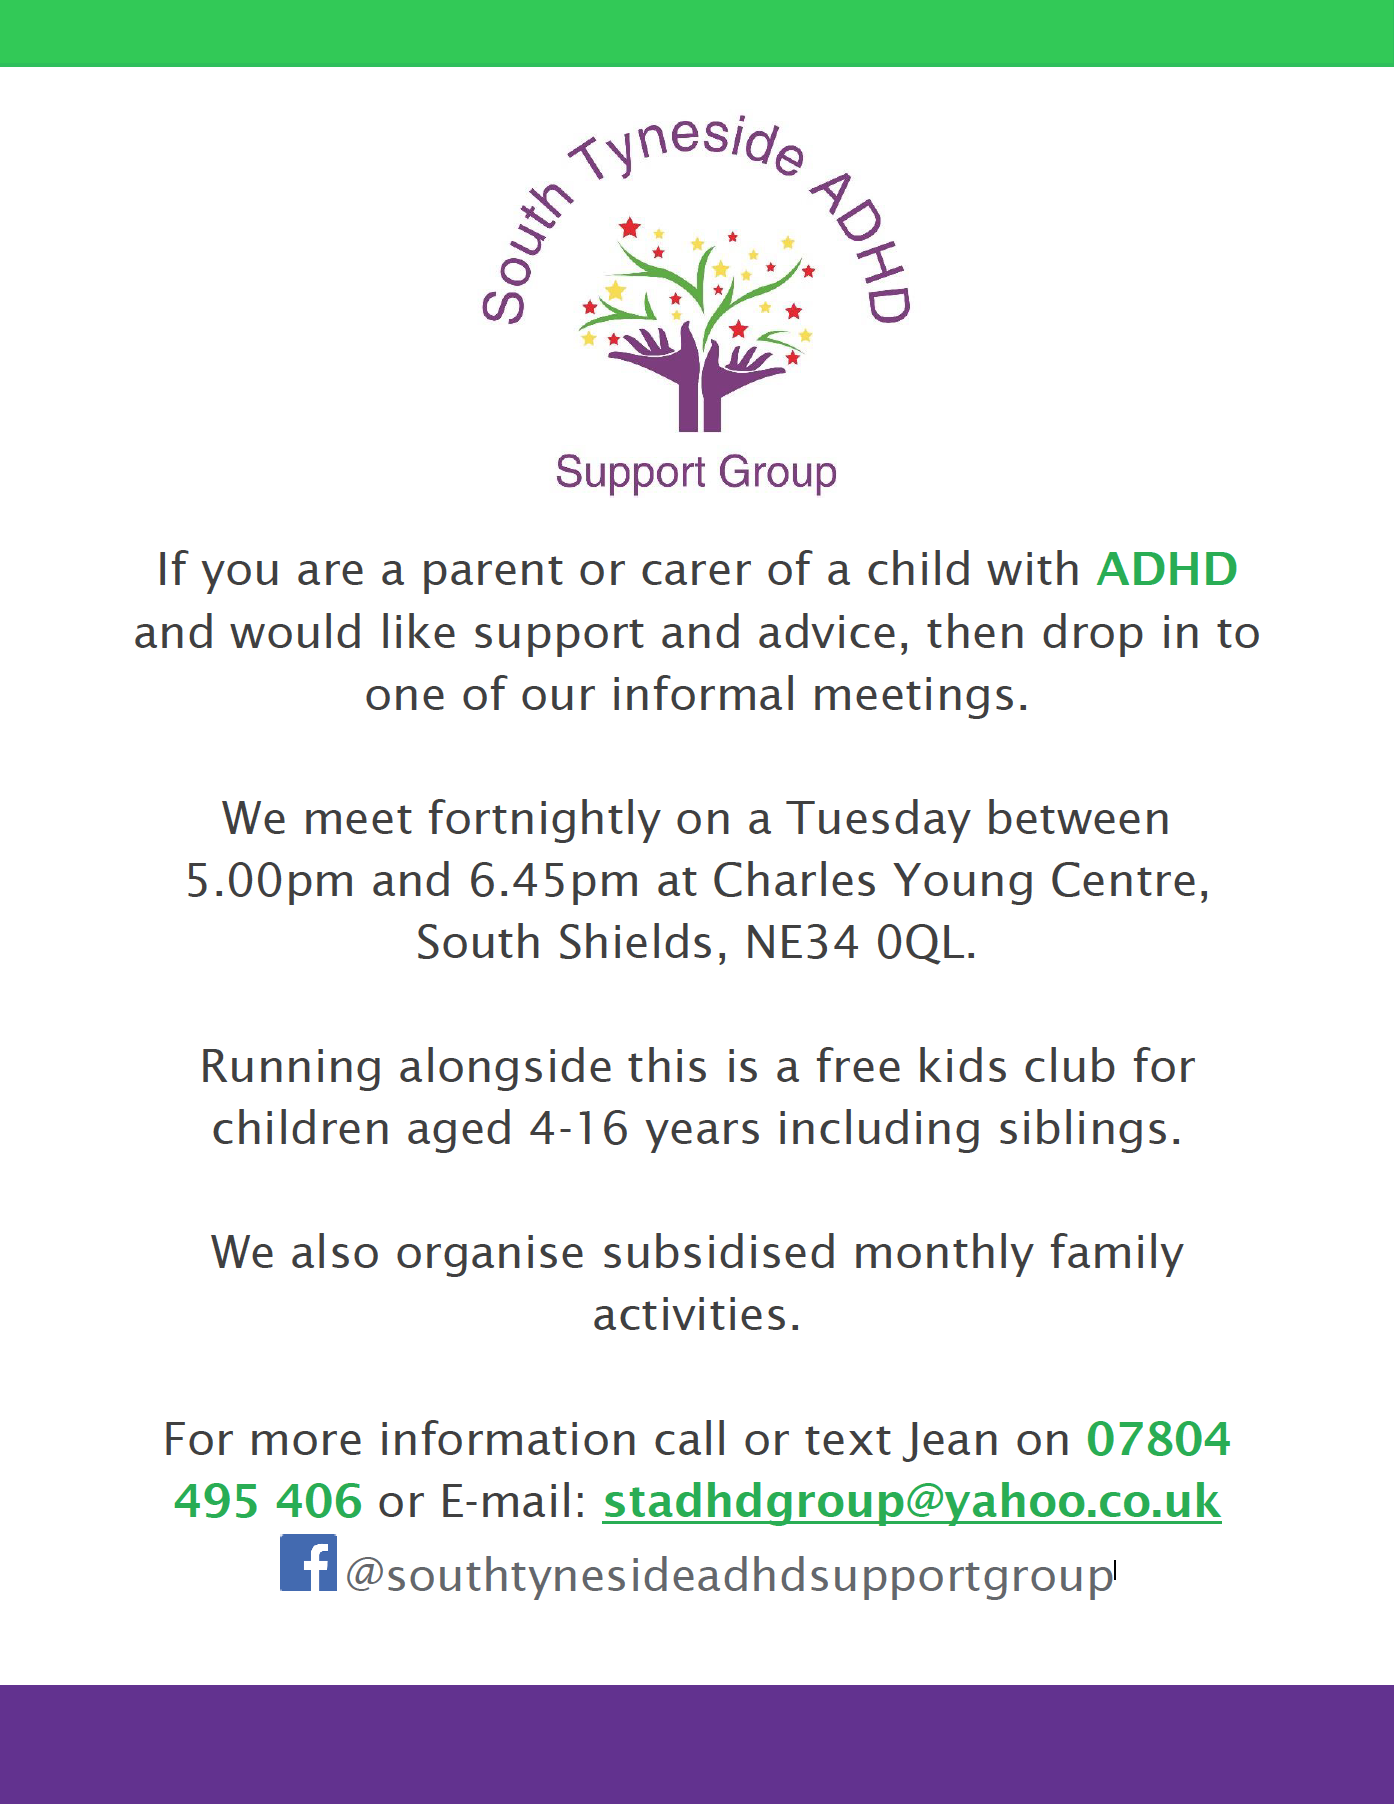 South Tyneside ADHD Support Group